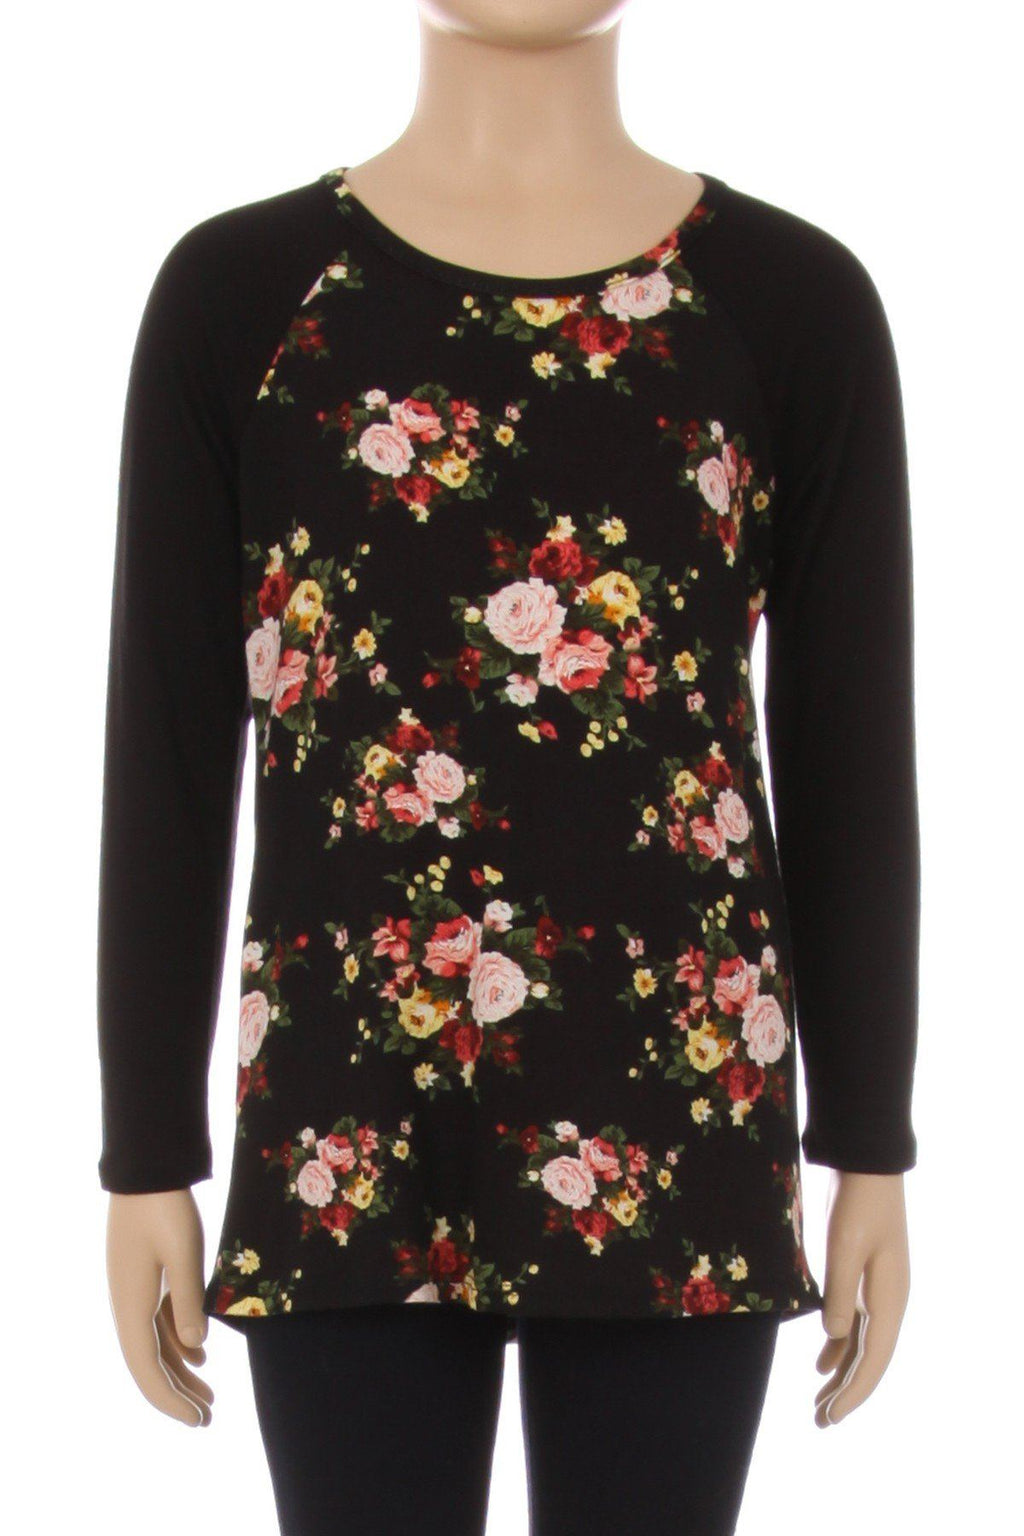 Girl's Raglan Tunic Top Rose Printed Shirt Black/Pink: S/M/L/XL - MomMe and More